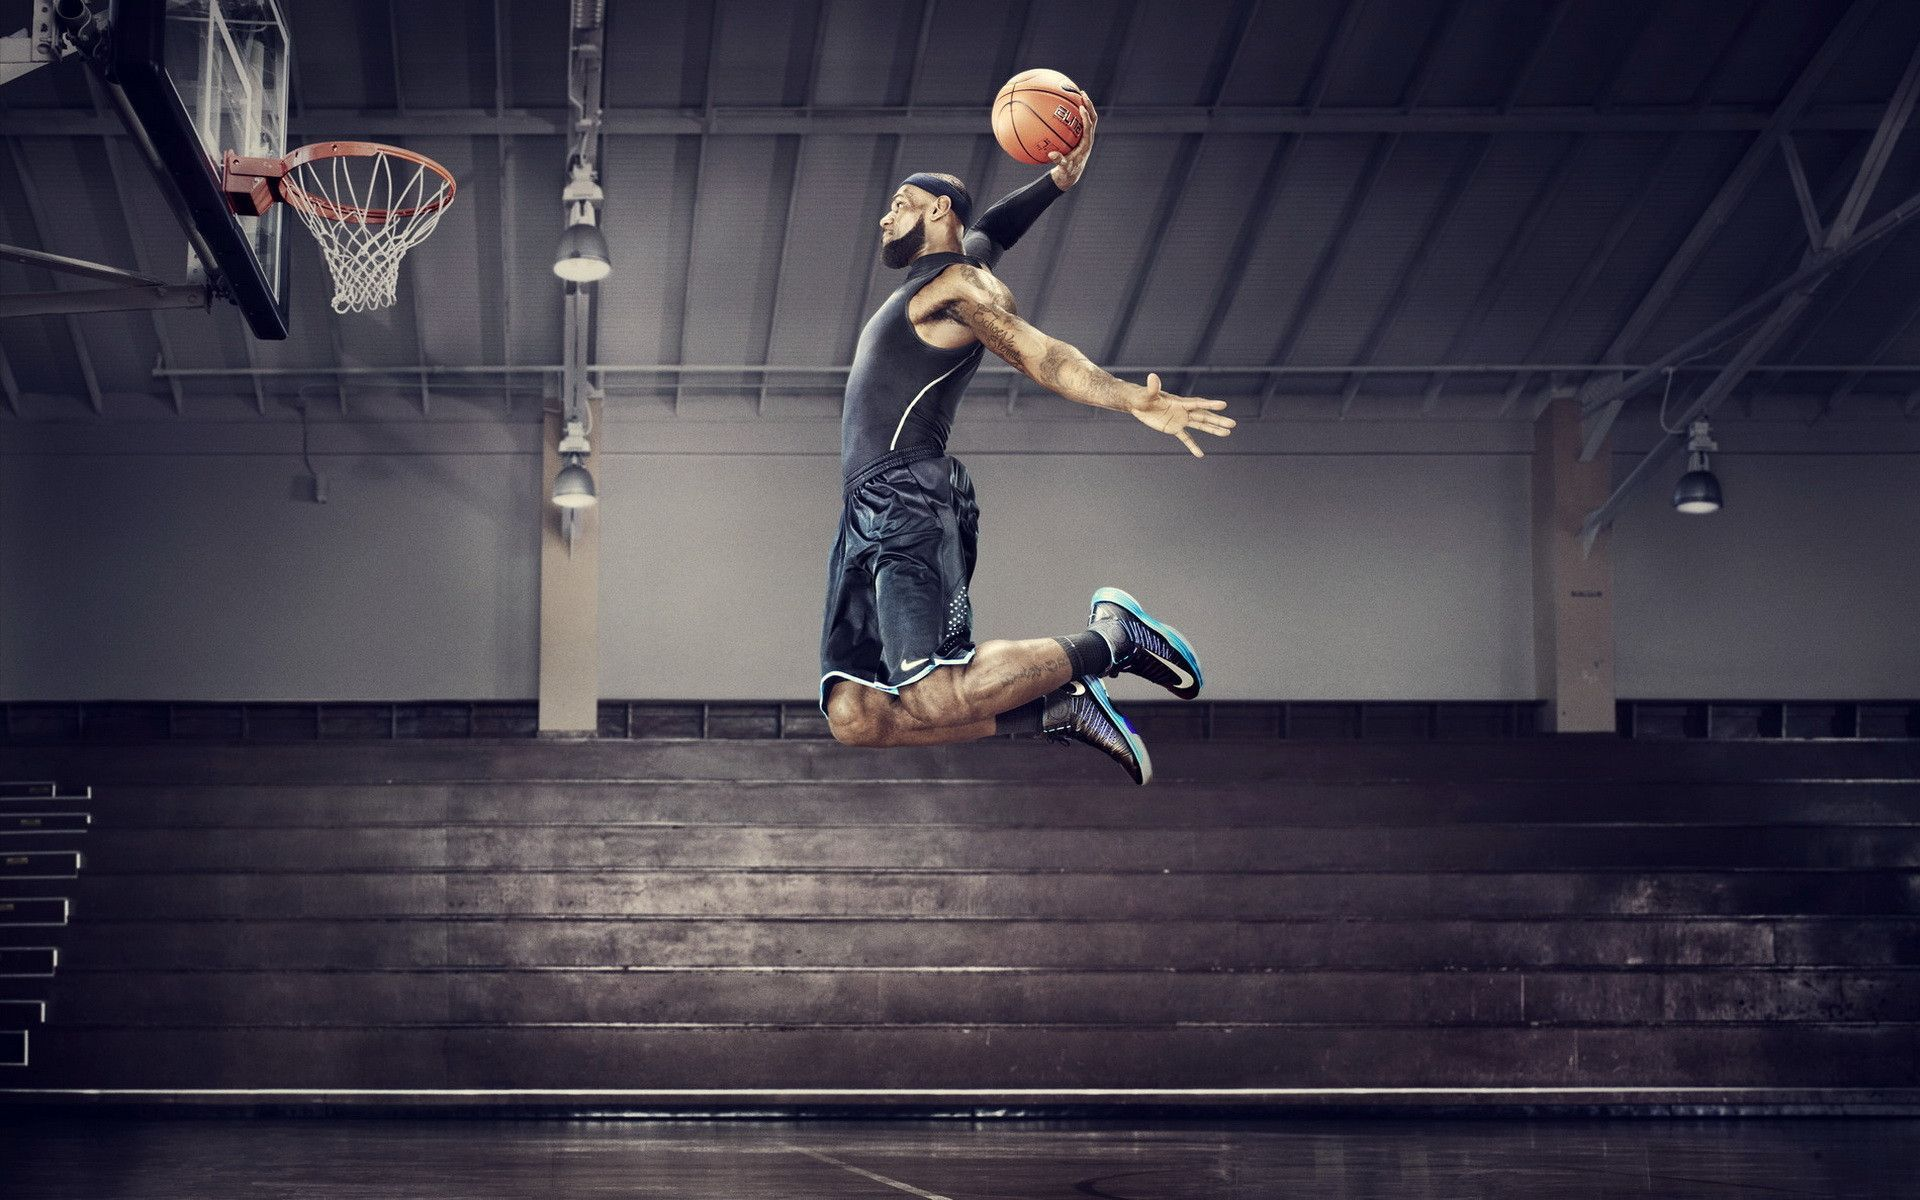 Sport Wallpaper Life: 70+ Basketball Wallpaper Pictures In High Def For Download